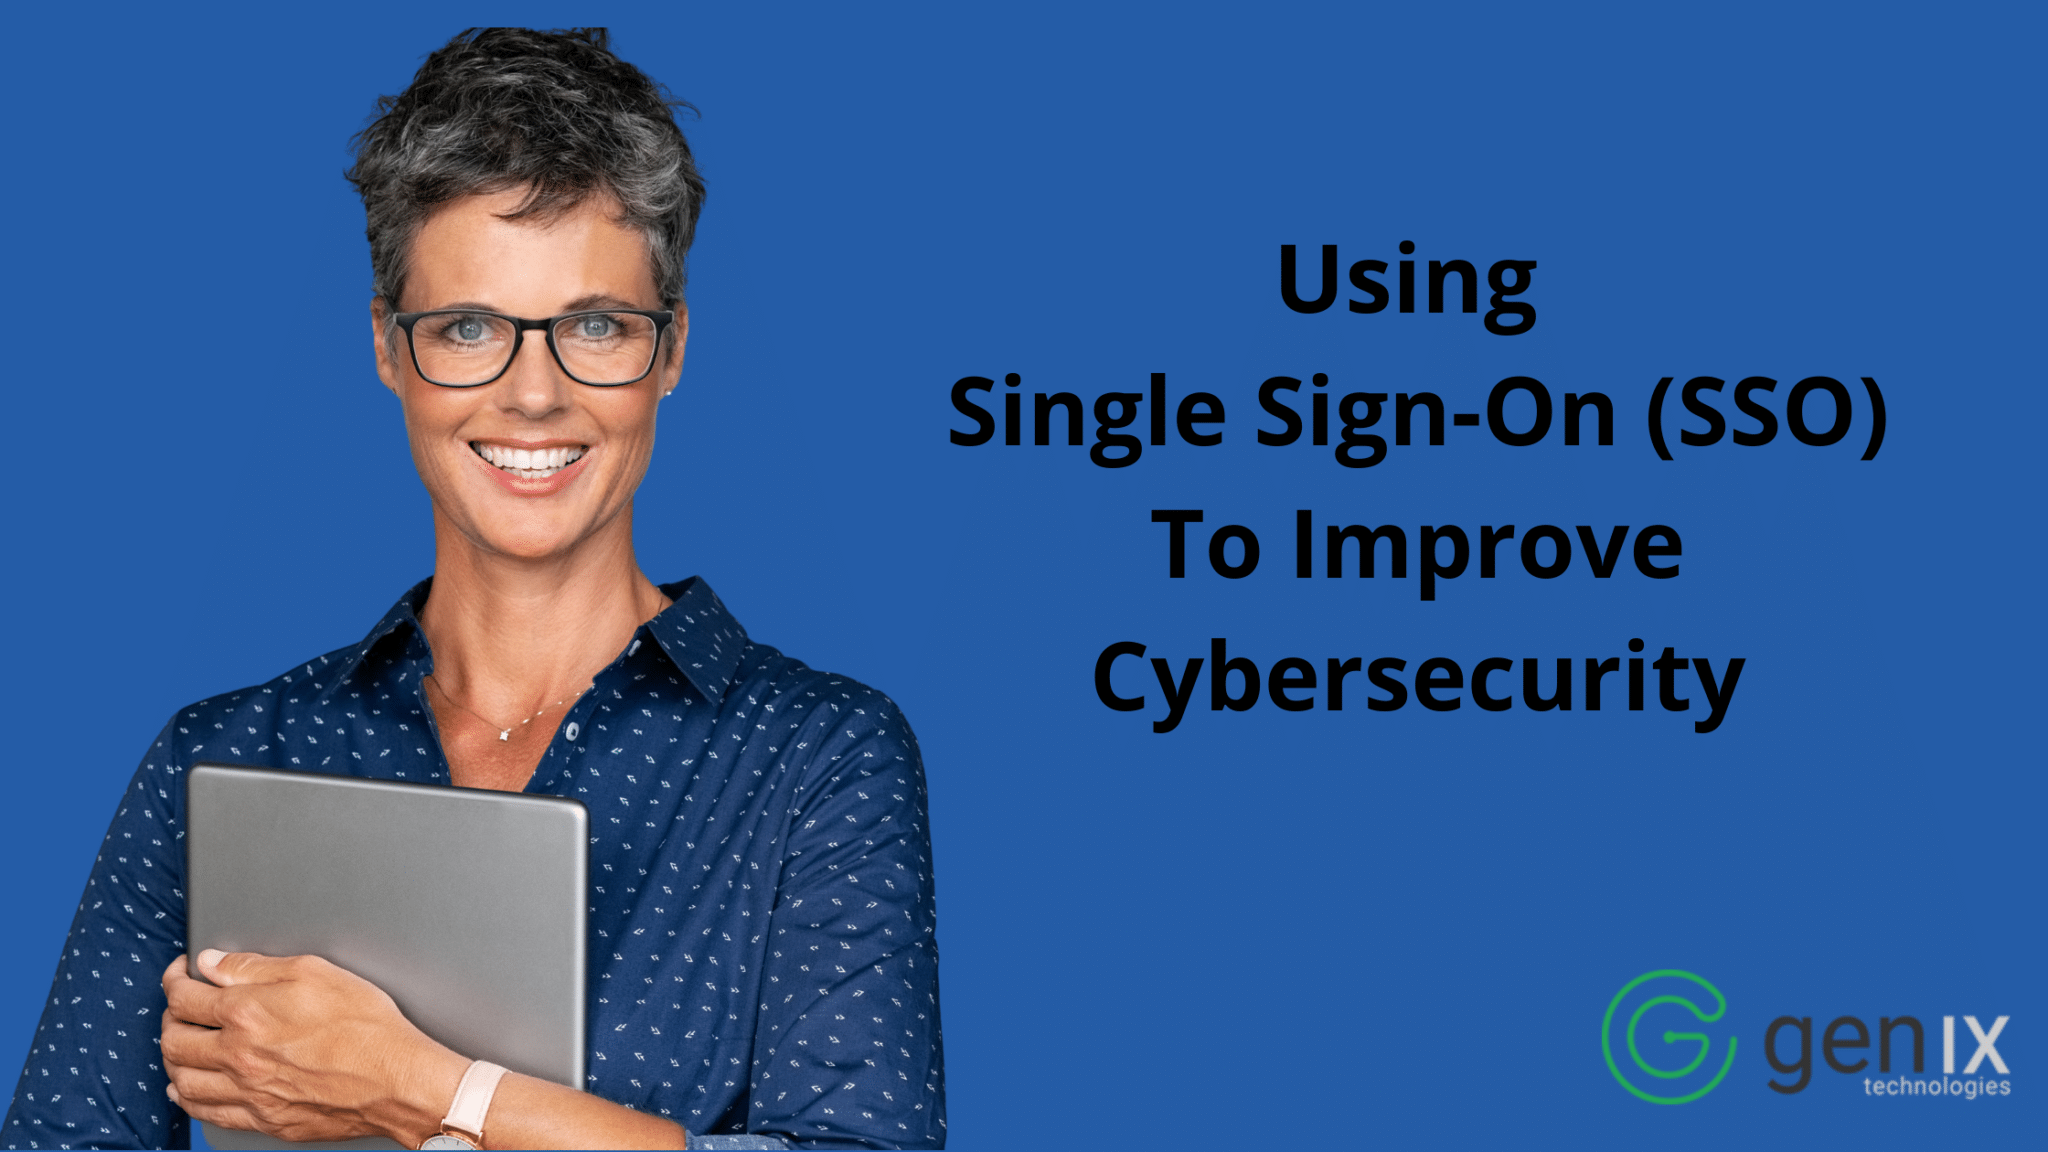 Using Single Sign-On (SSO) to Improve Cybersecurity